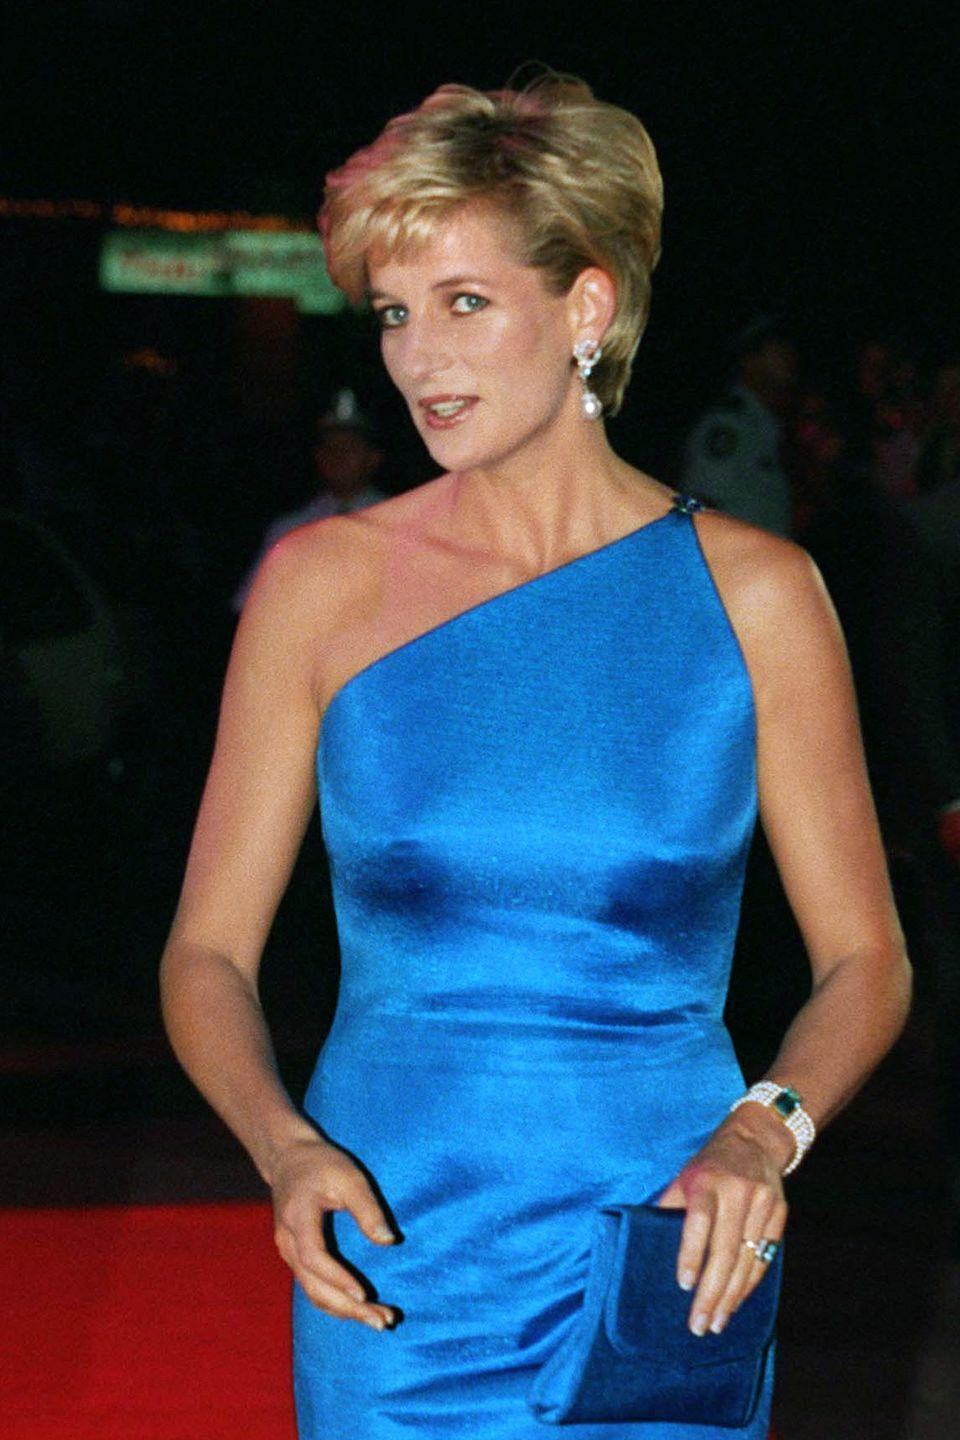 """<p>Diana, Princess of Wales had long worn an iconic <span class=""""redactor-unlink"""">'80s 'do</span>, but a meeting with celebrity hair stylist Sam McKnight and a leap of faith inspired that chic pixie cut. """"Like many women, she used to hide behind her hair,"""" he told the <a href=""""http://www.telegraph.co.uk/beauty/people/sam-mcknight-on-creating-that-iconic-princess-diana-haircut/"""" rel=""""nofollow noopener"""" target=""""_blank"""" data-ylk=""""slk:Daily Telegraph"""" class=""""link rapid-noclick-resp"""">Daily Telegraph</a>. """"She said, 'what would you do if I gave you free reign?' I said, 'cut it short,' and she said, could you do it now?'""""</p>"""